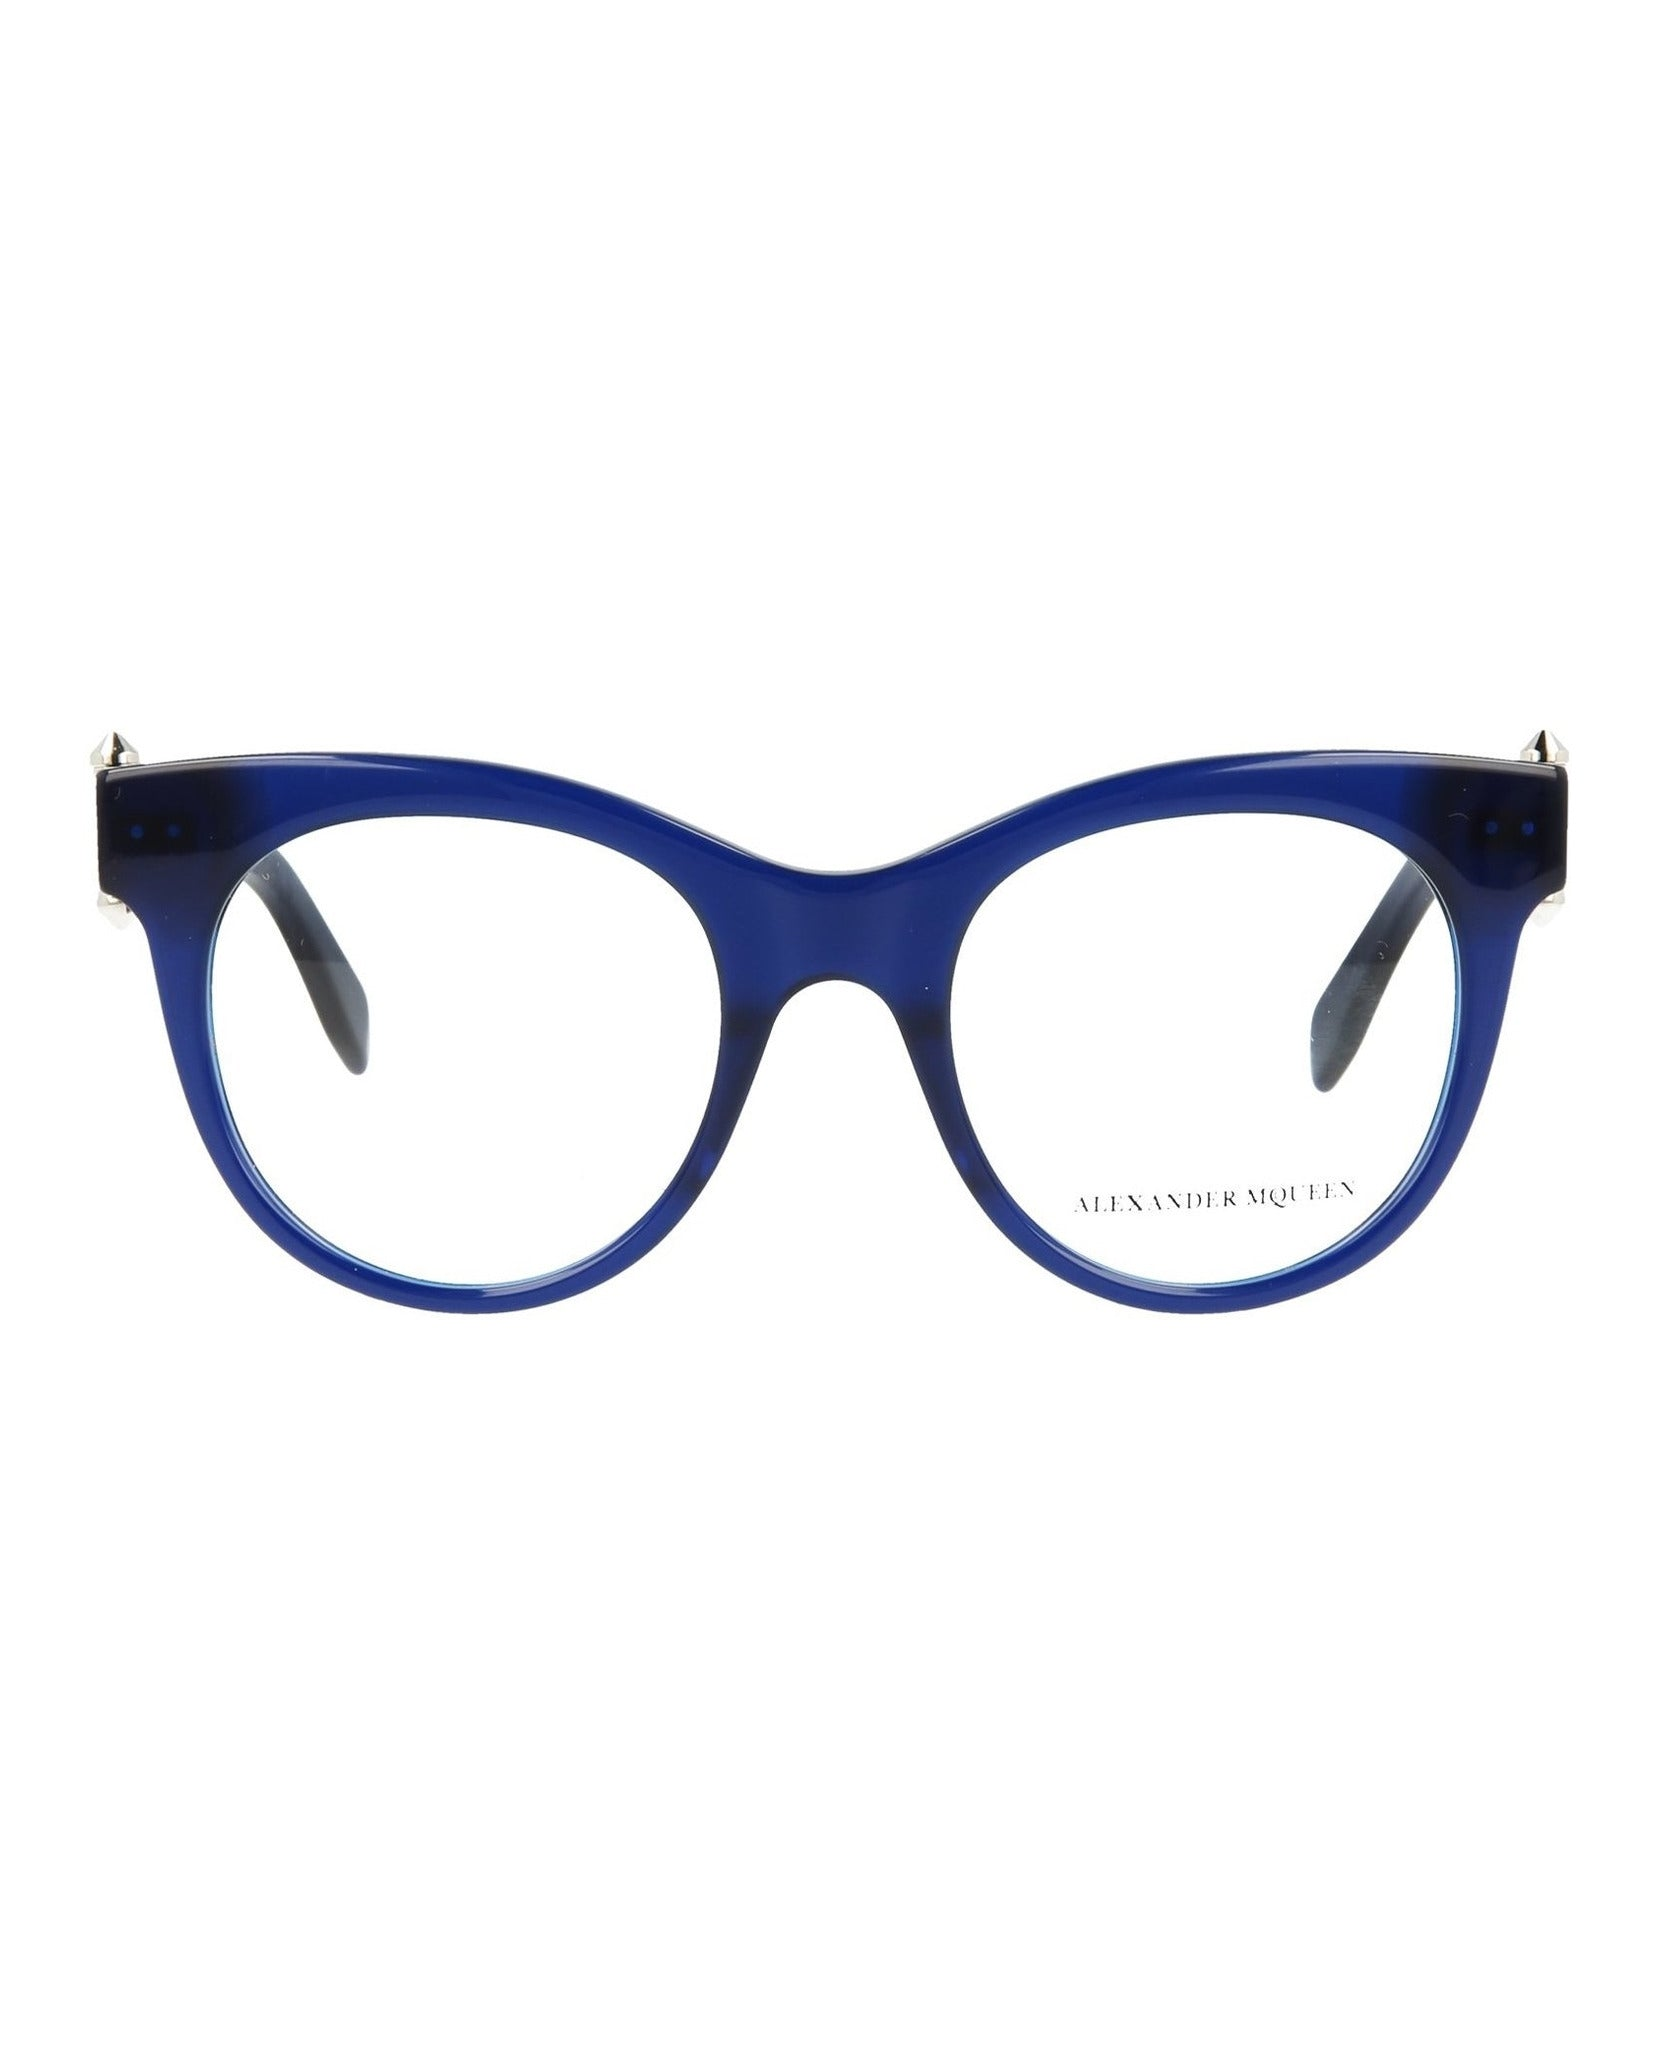 Alexander McQueen Round/Oval Optical Frames